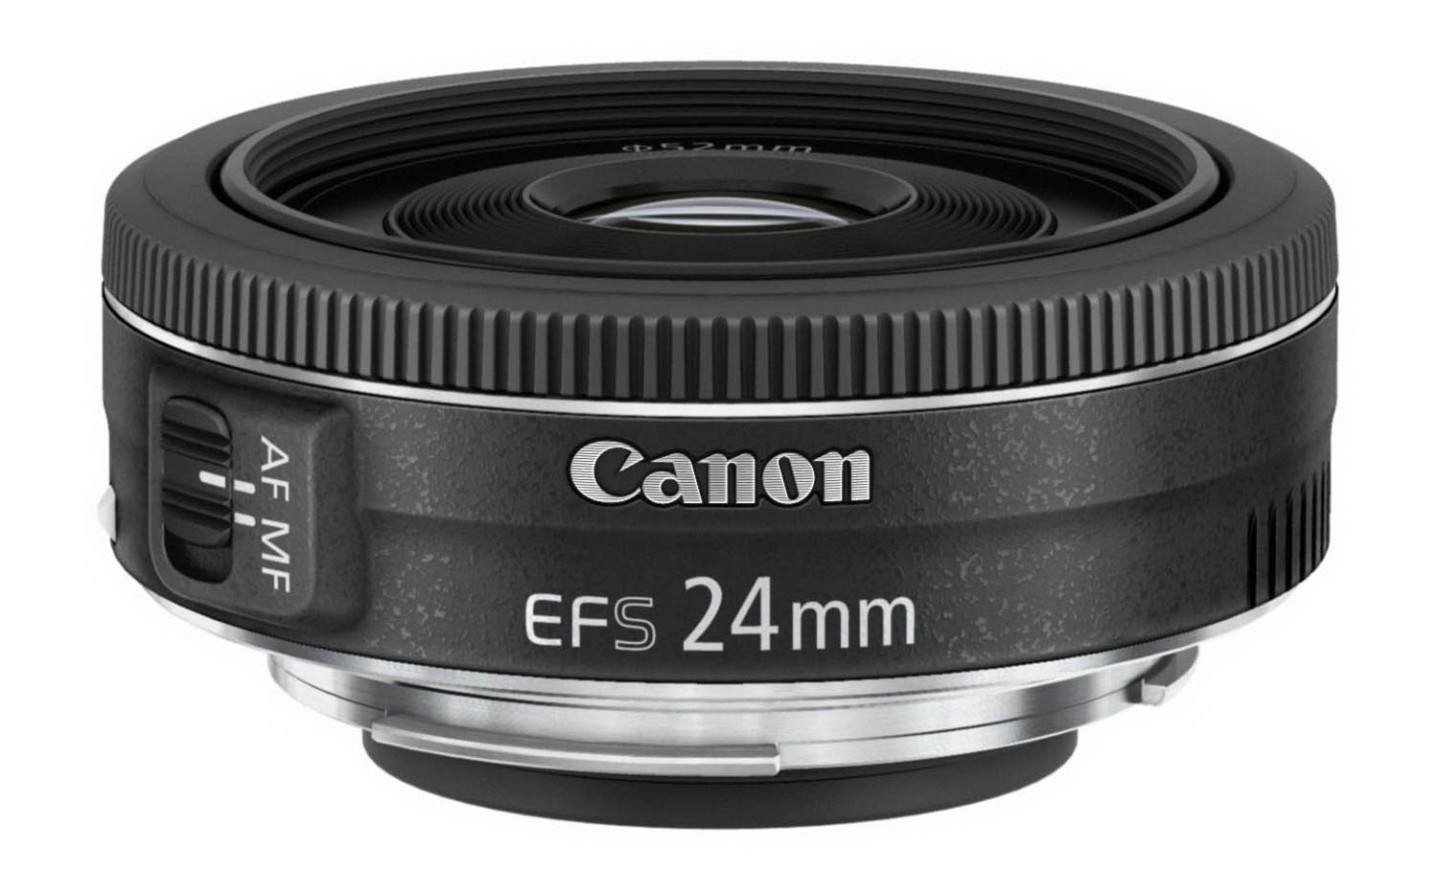 Canon-EF-S-24mm-f2.8-STM